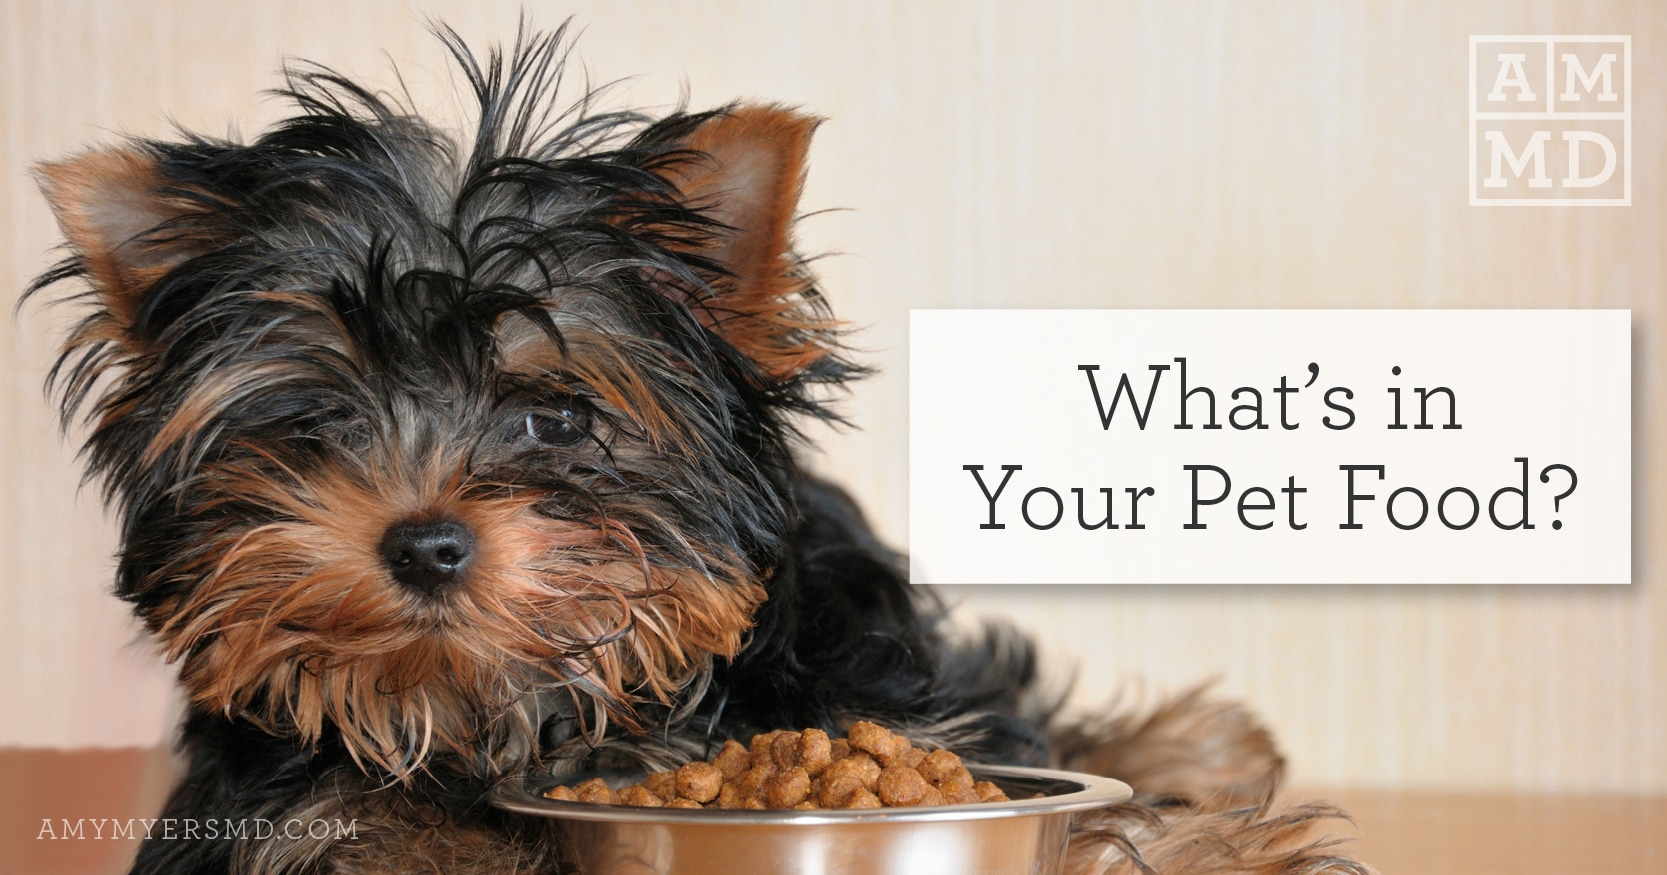 What's In Your Pet Food? - Small Dog With a Bowl of Food - Featured Image - Amy Myers MD